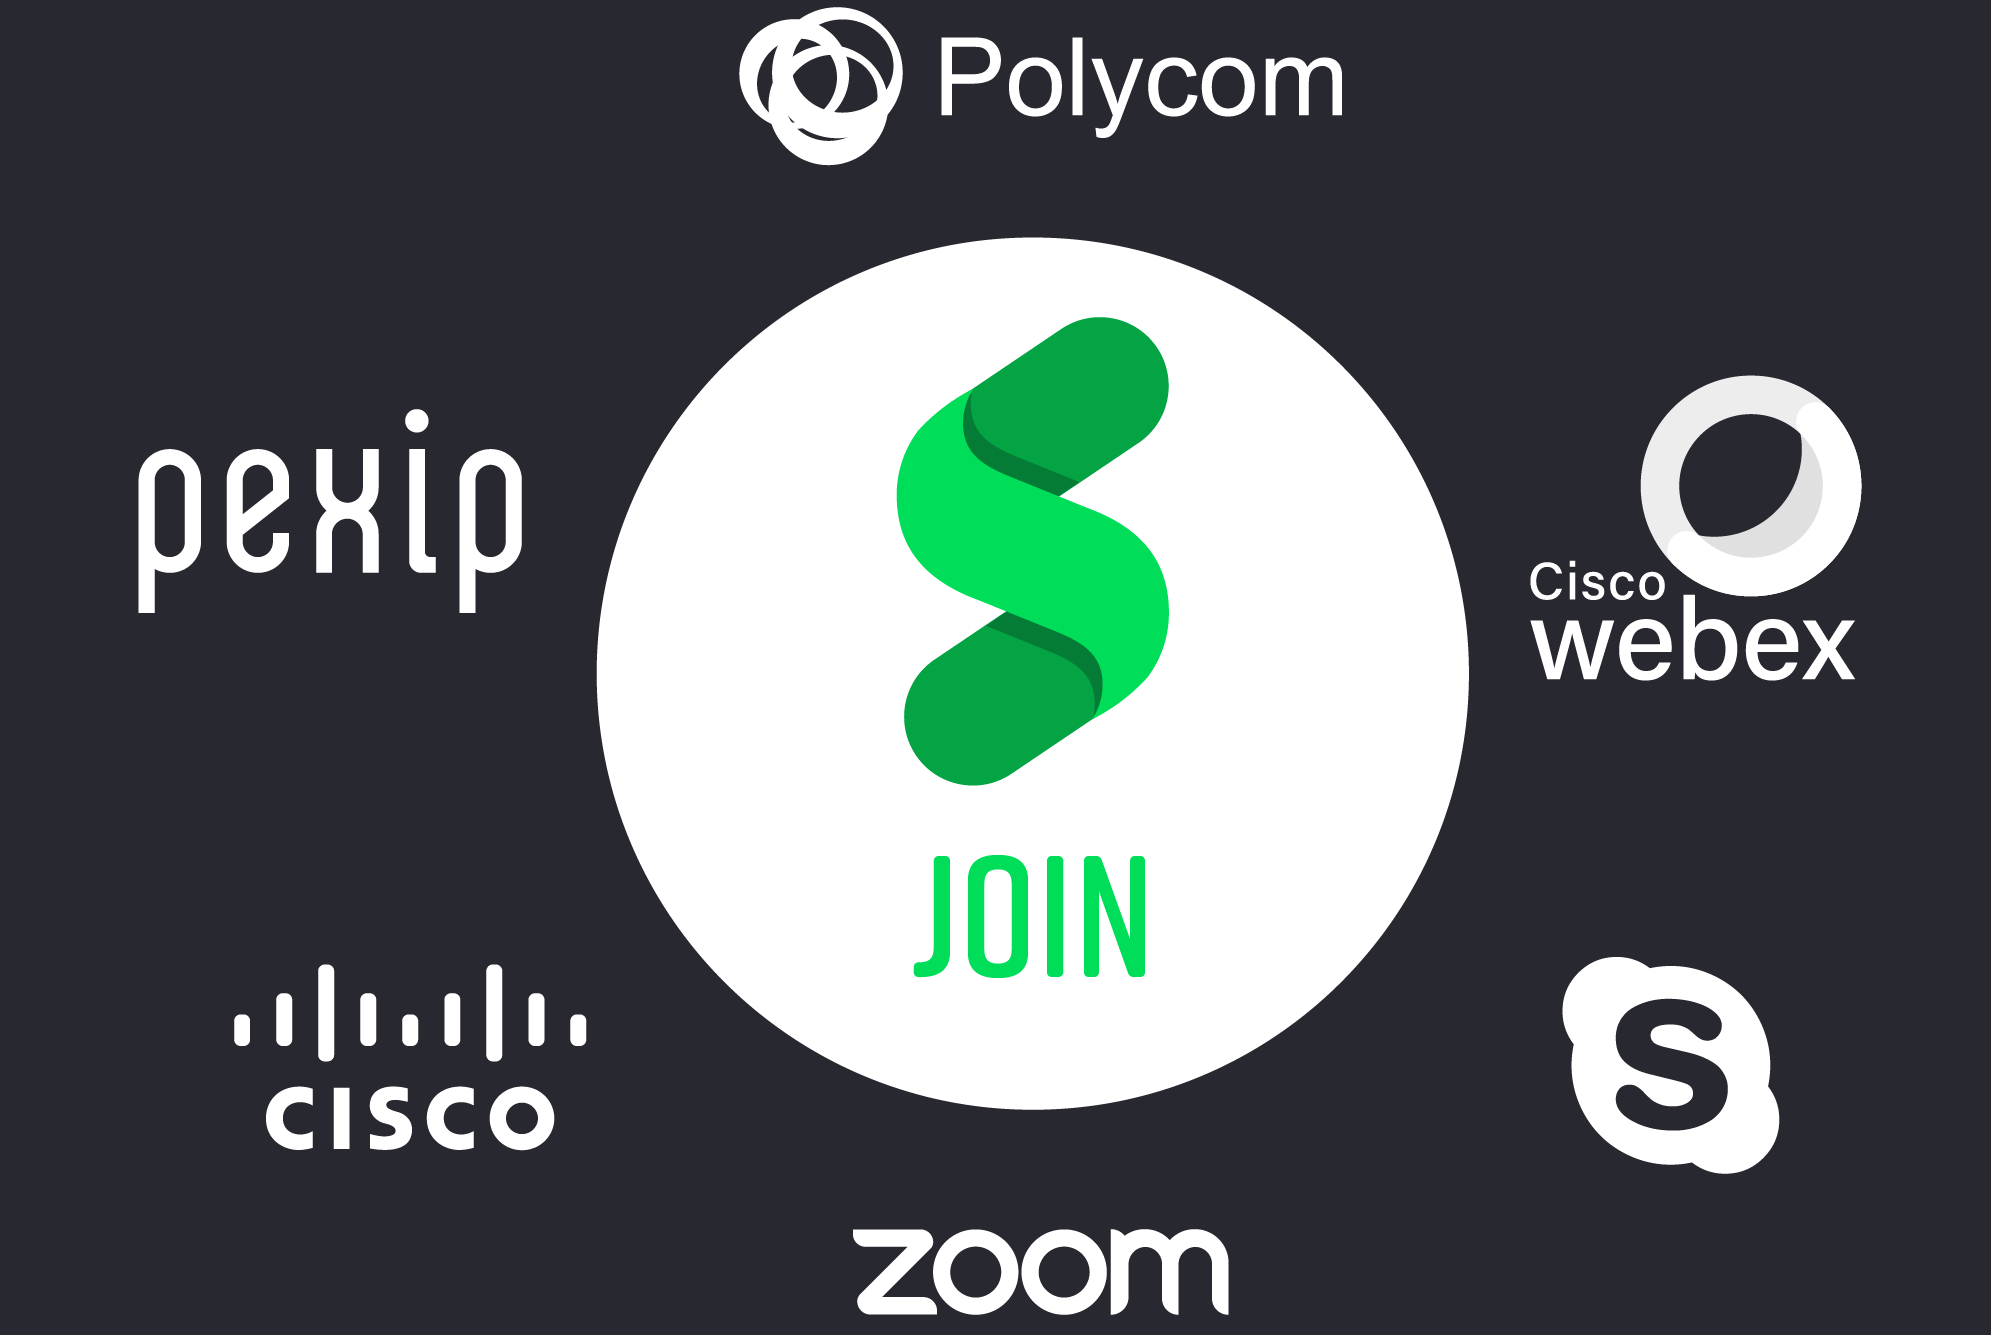 Six platforms, One solution to bring them together